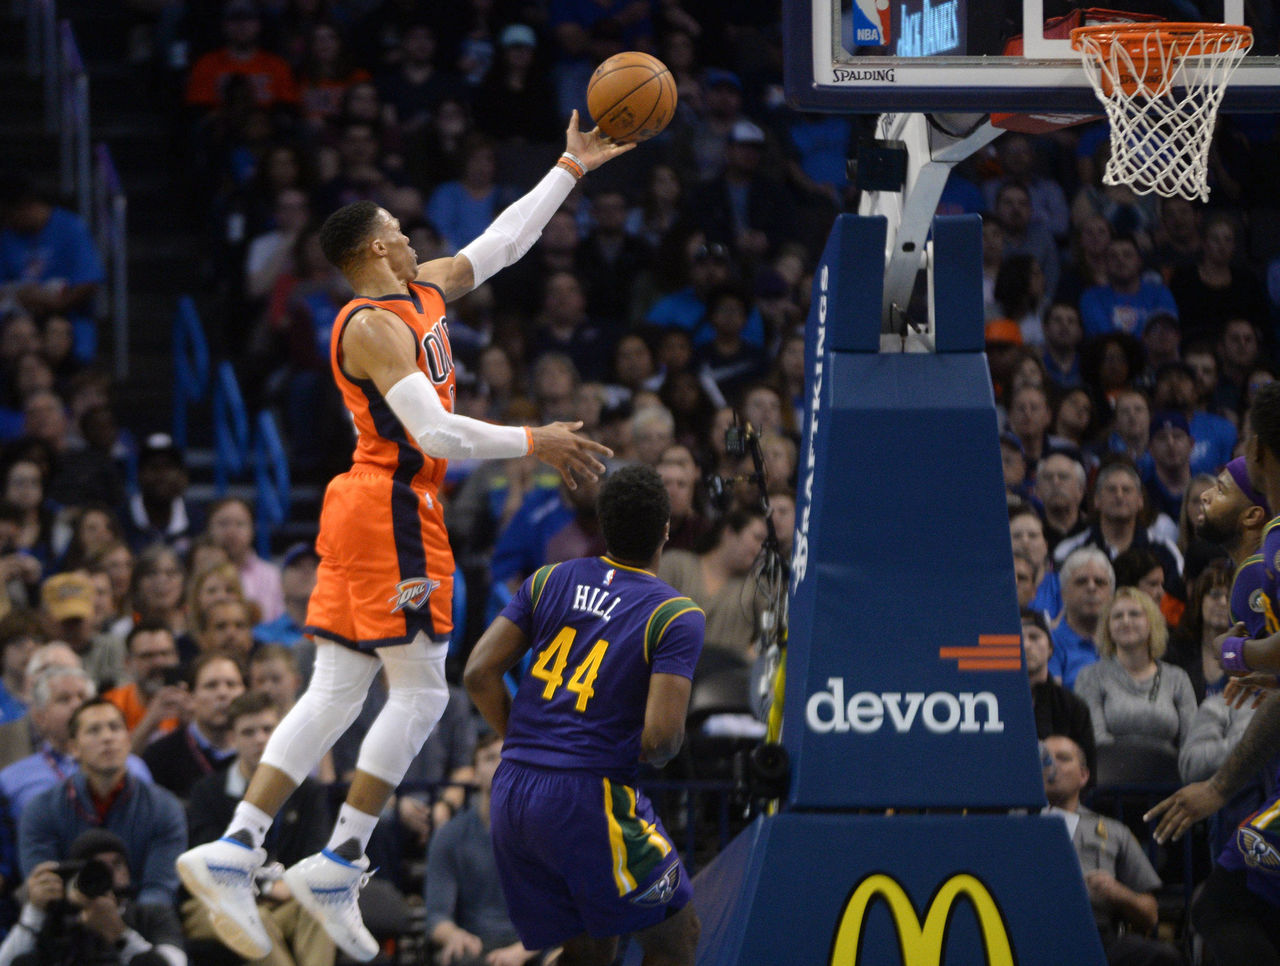 Cropped 2017 02 27t012716z 883342776 nocid rtrmadp 3 nba new orleans pelicans at oklahoma city thunder